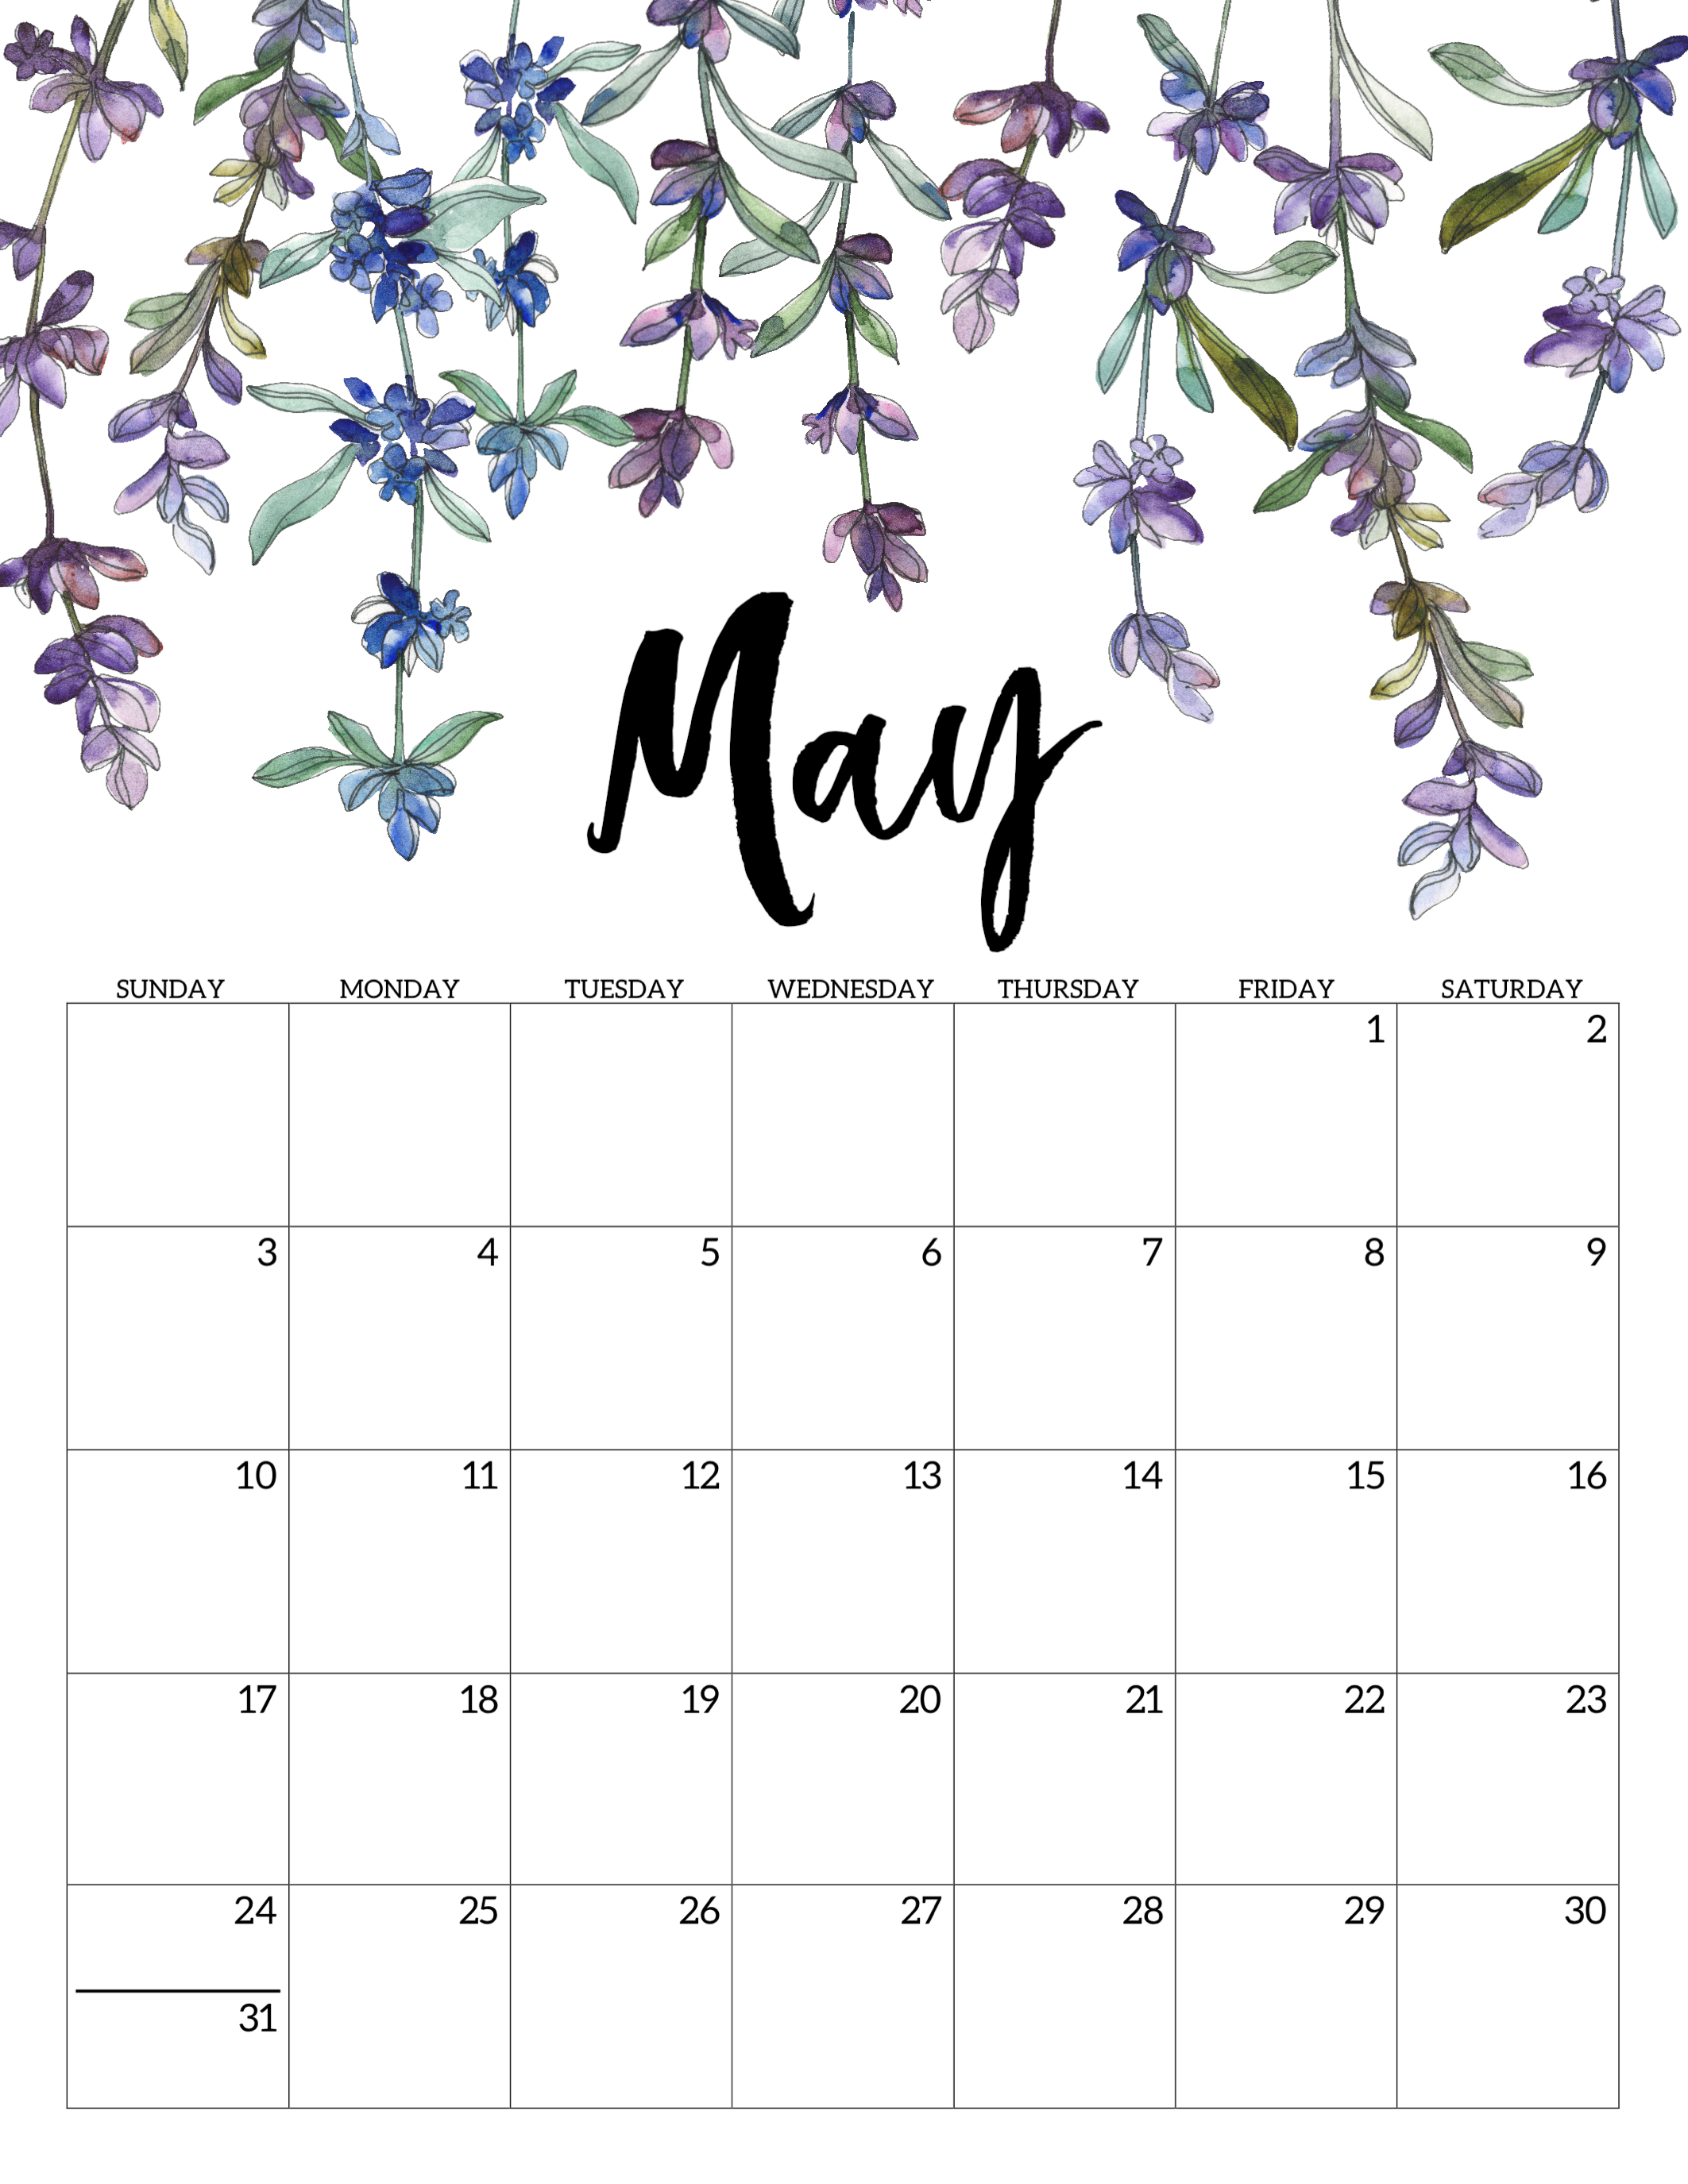 image regarding Free Printable 2020 Calendar named 2020 No cost Printable Calendar - Floral - Paper Path Layout